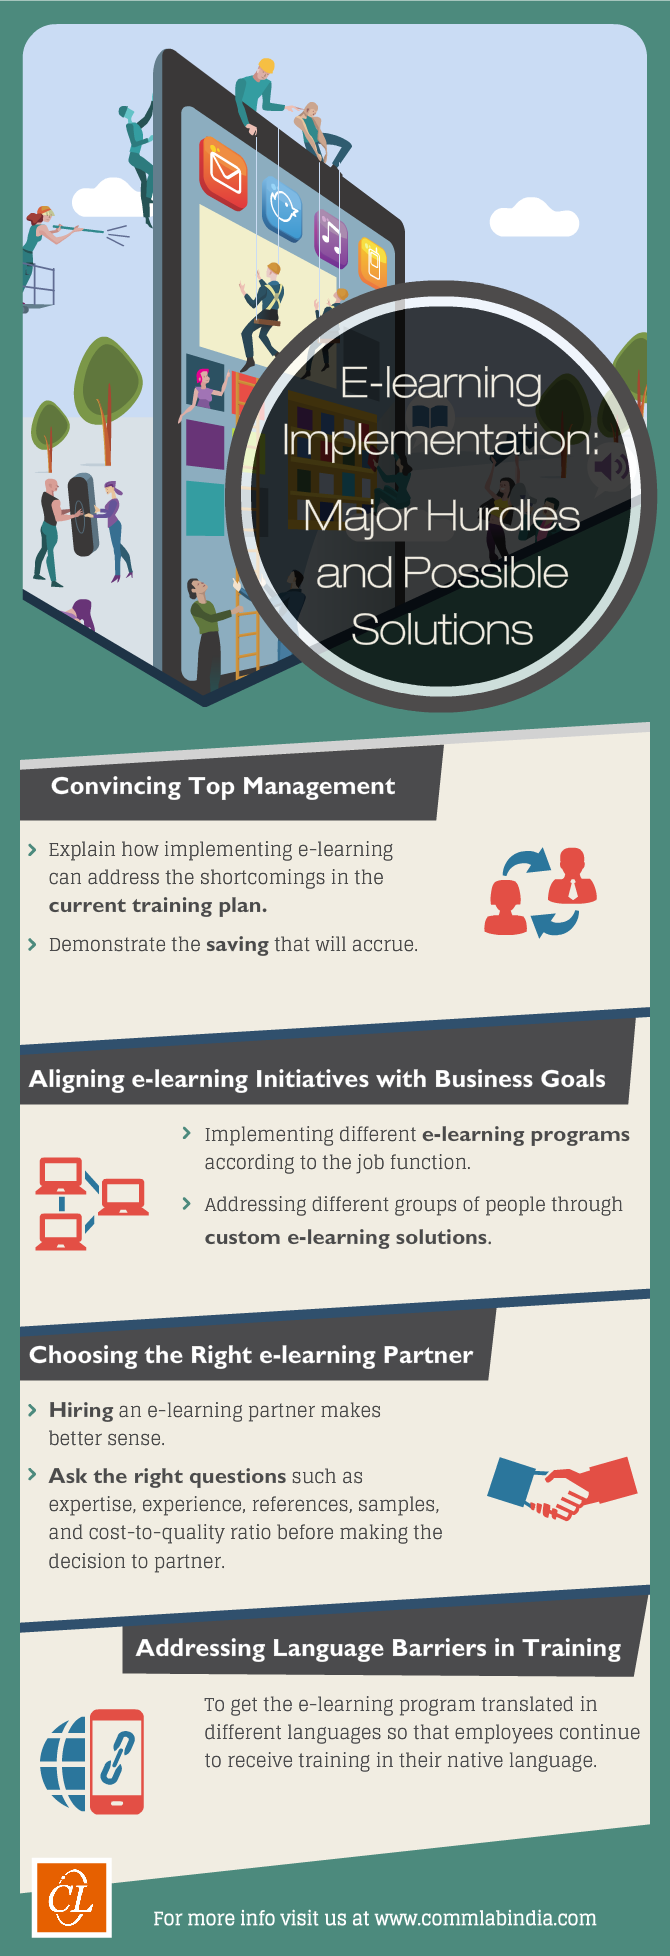 E-learning Implementation: Major Hurdles and Possible Solutions [Infographic]